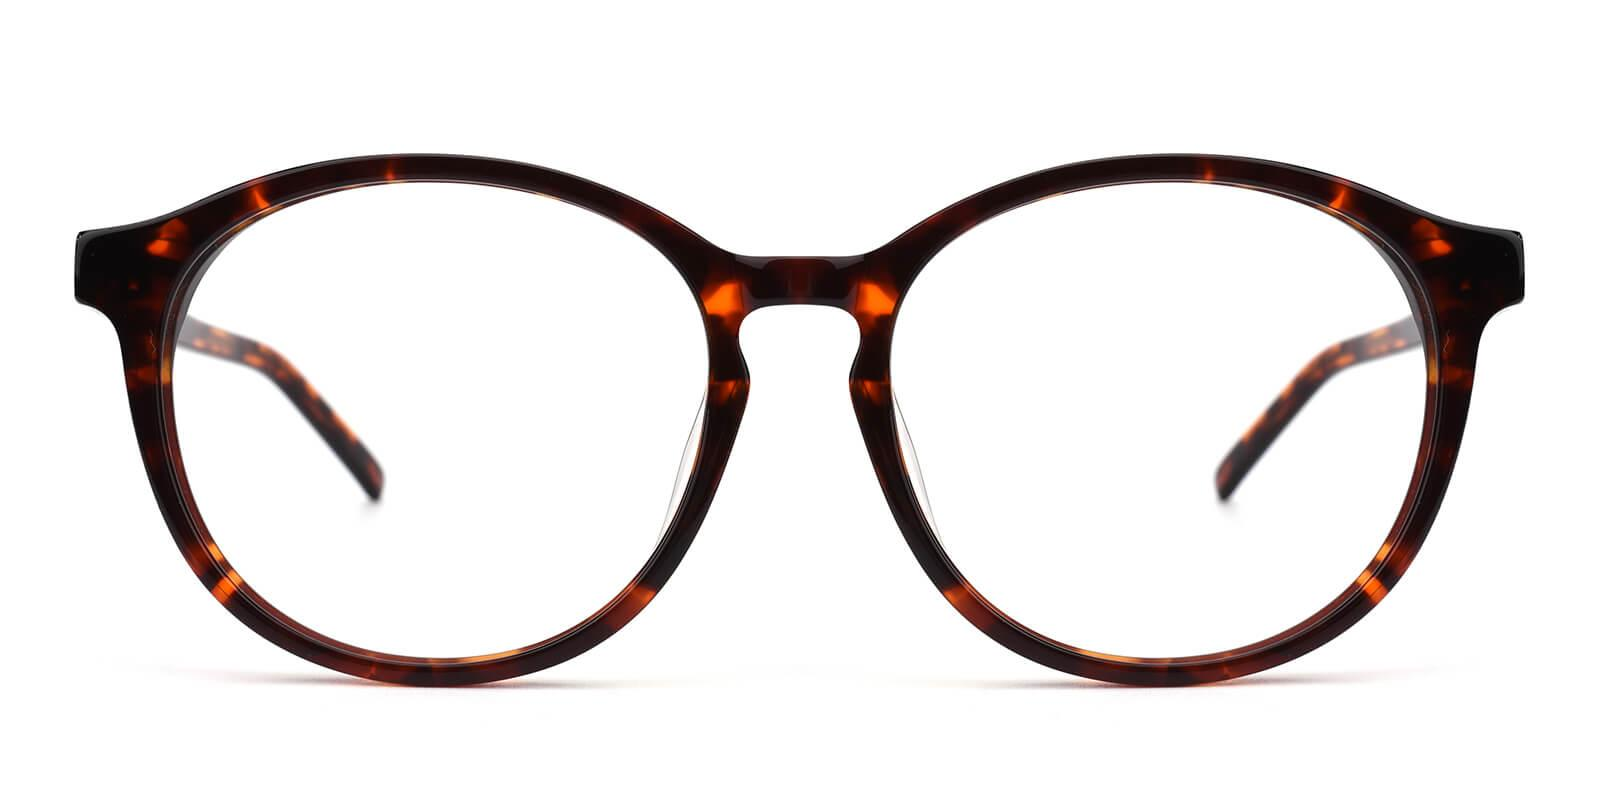 Havana-Tortoise-Round-Acetate-Eyeglasses-additional2